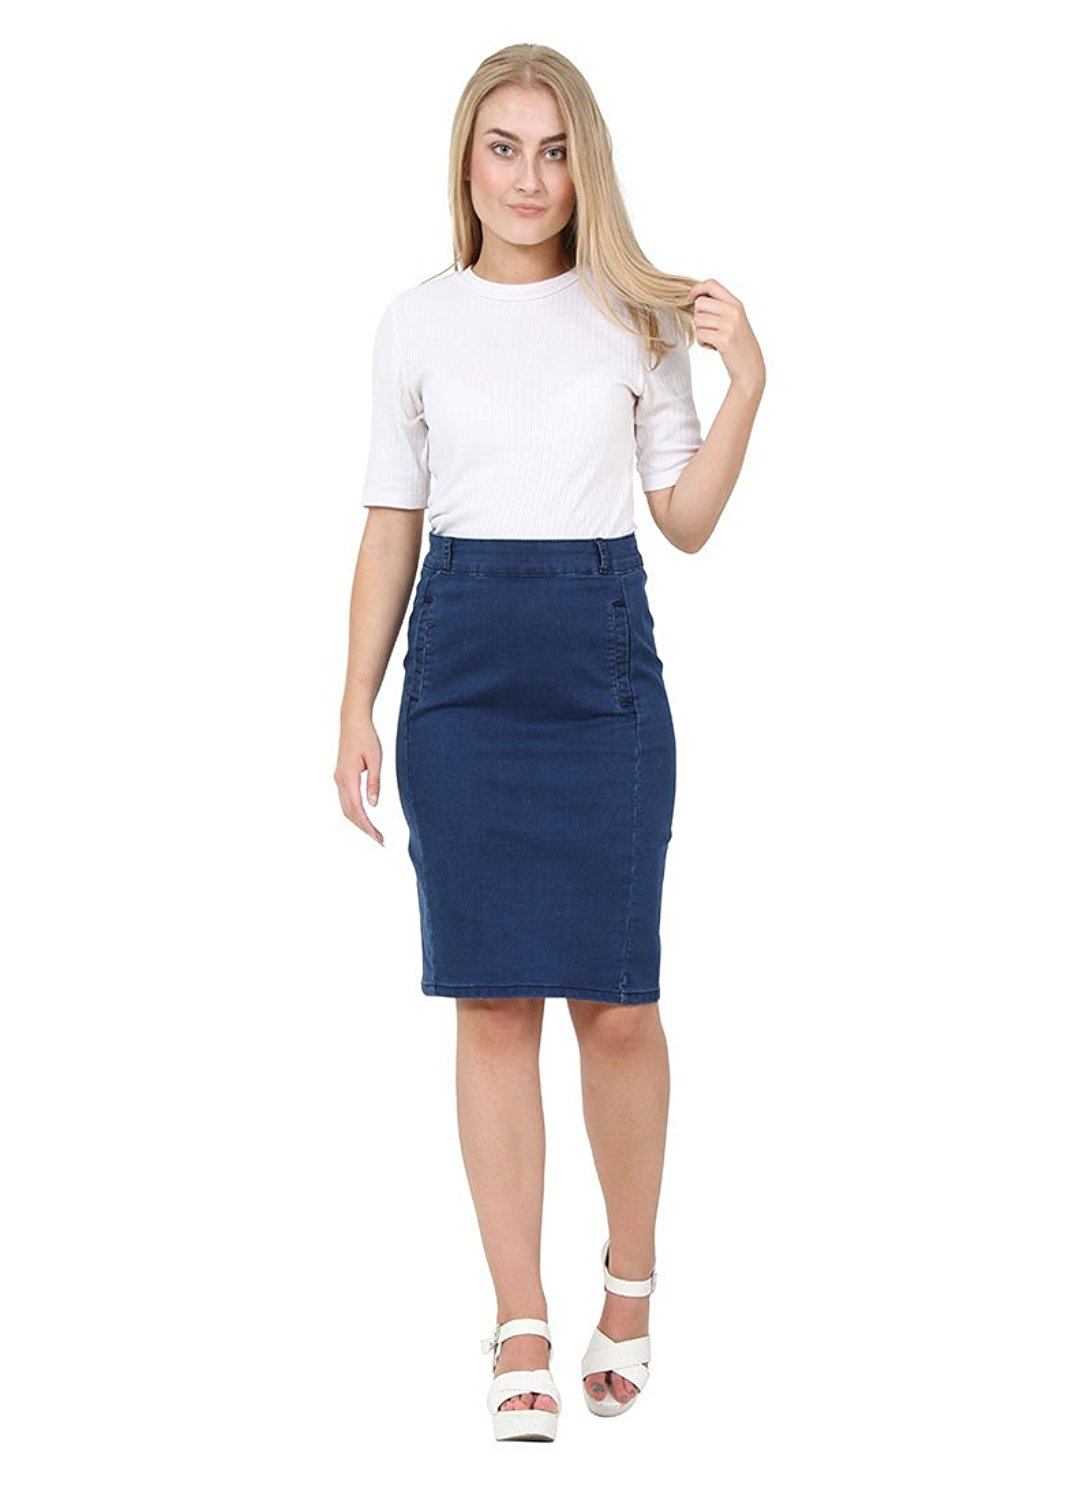 3a3d8e6a3 Get Quotations · Cindy H Knee-length Darkwash Denim Skirt Pencil skirt  Denim Midi Skirt